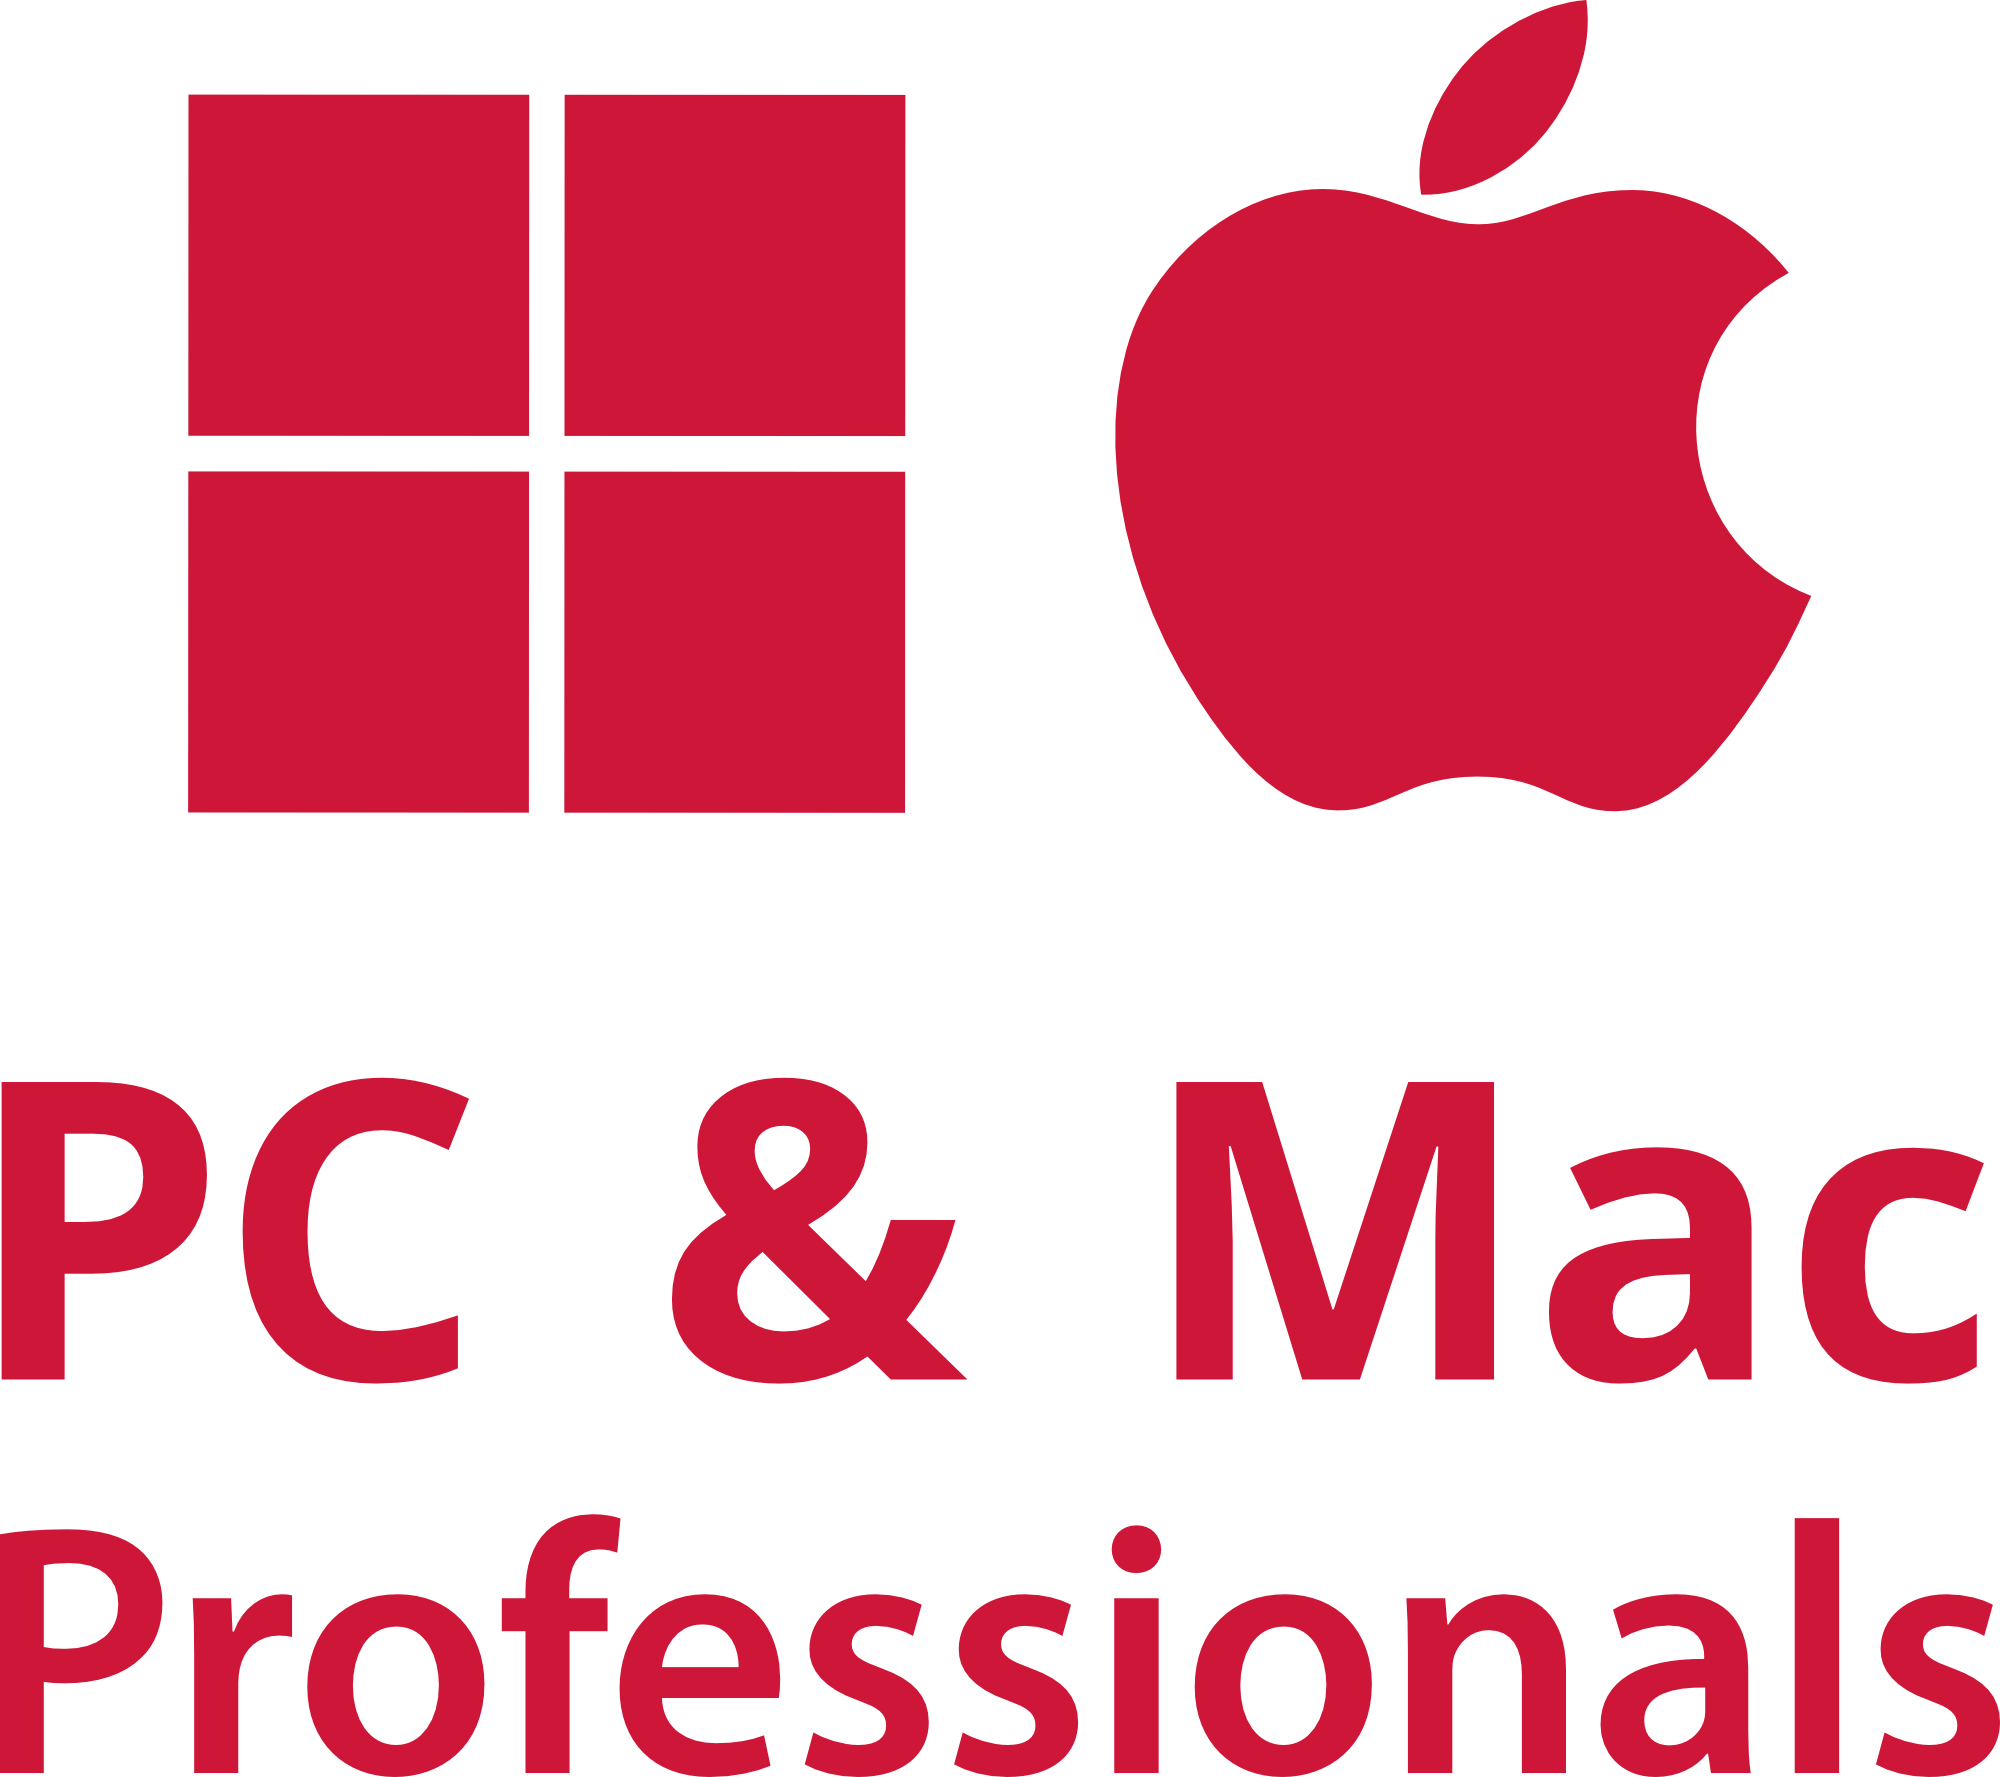 Tekeez® - PC & Mac Professionals - IT Superheroes